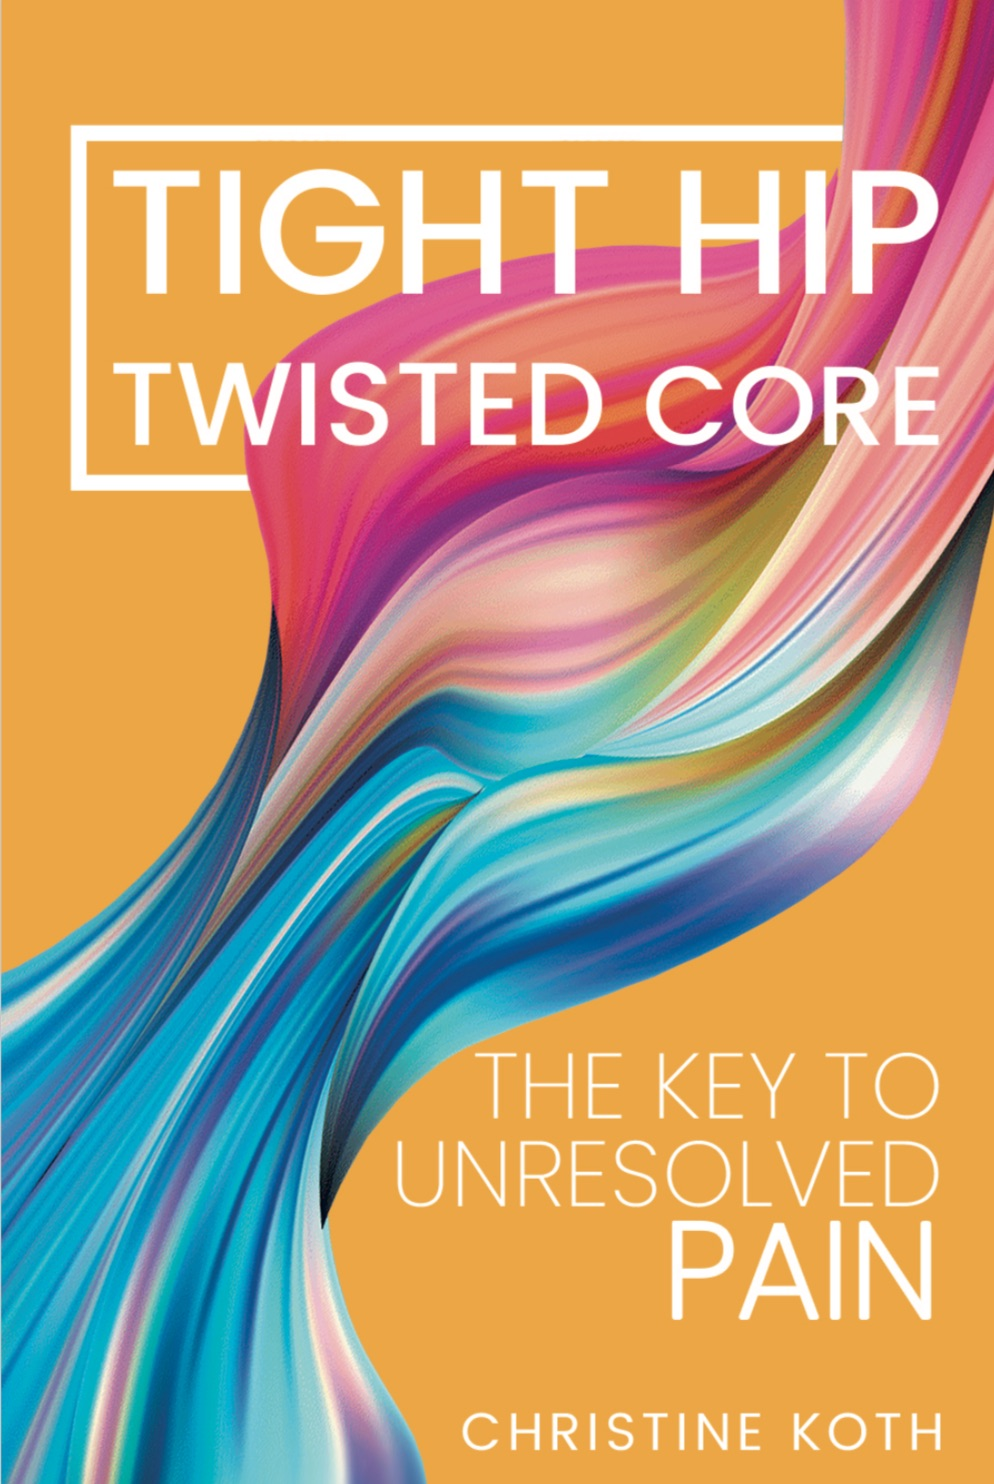 Tight Hip Twisted core first chapter